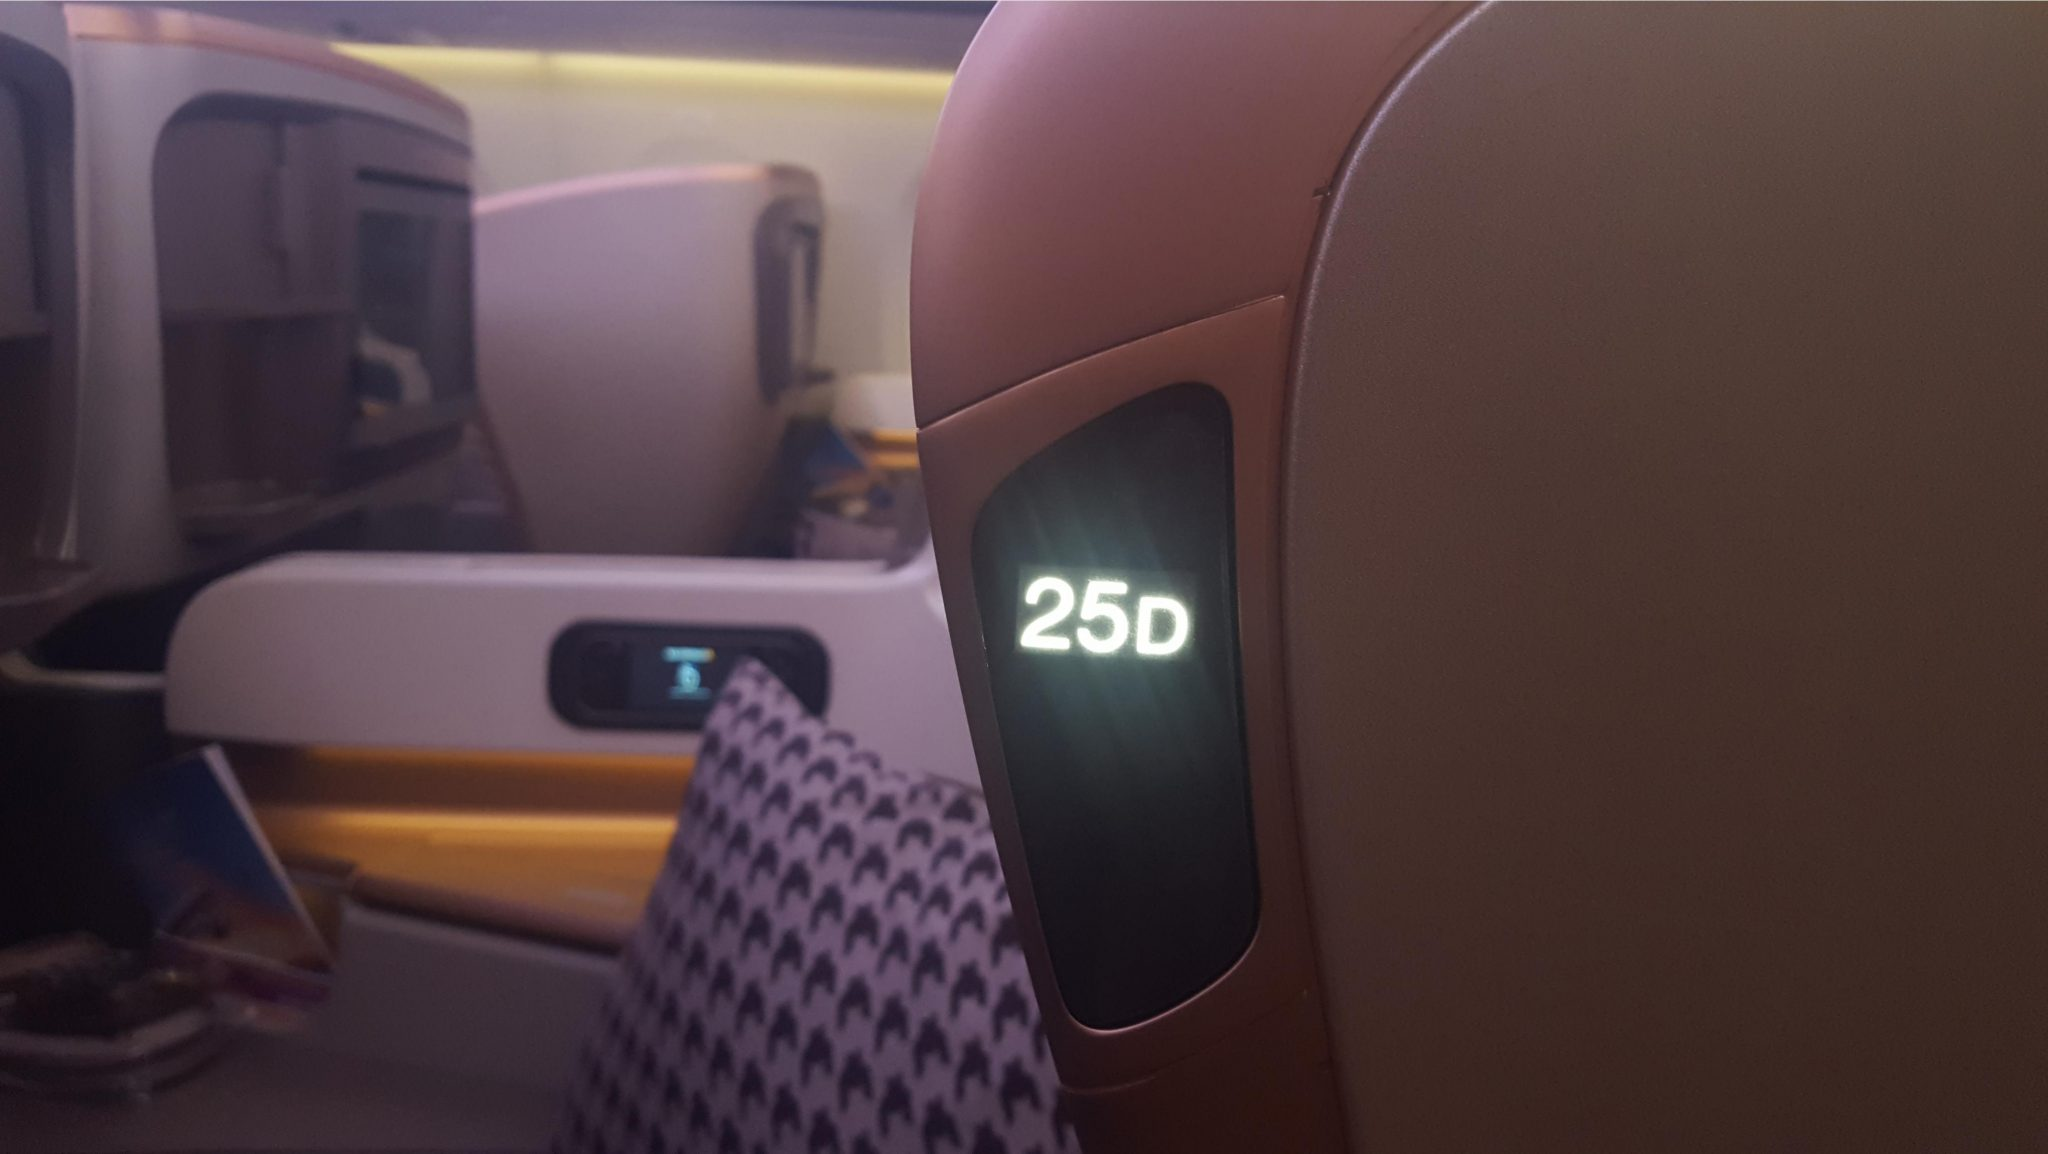 Flight review: Singapore Airlines Airbus A350-900ULR business class ...